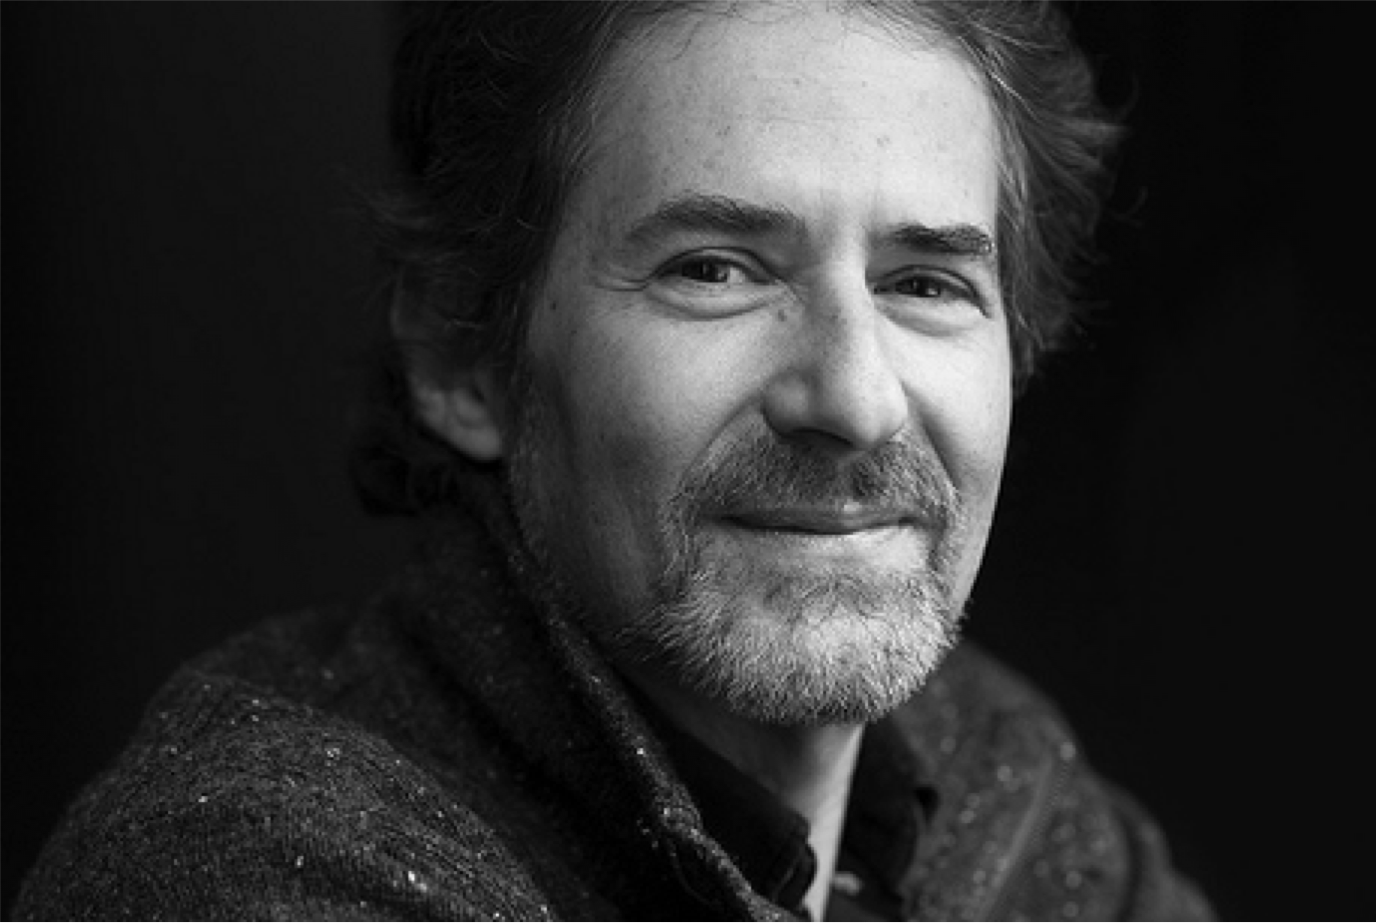 James Horner: morto il compositore di Titanic e Braveheart